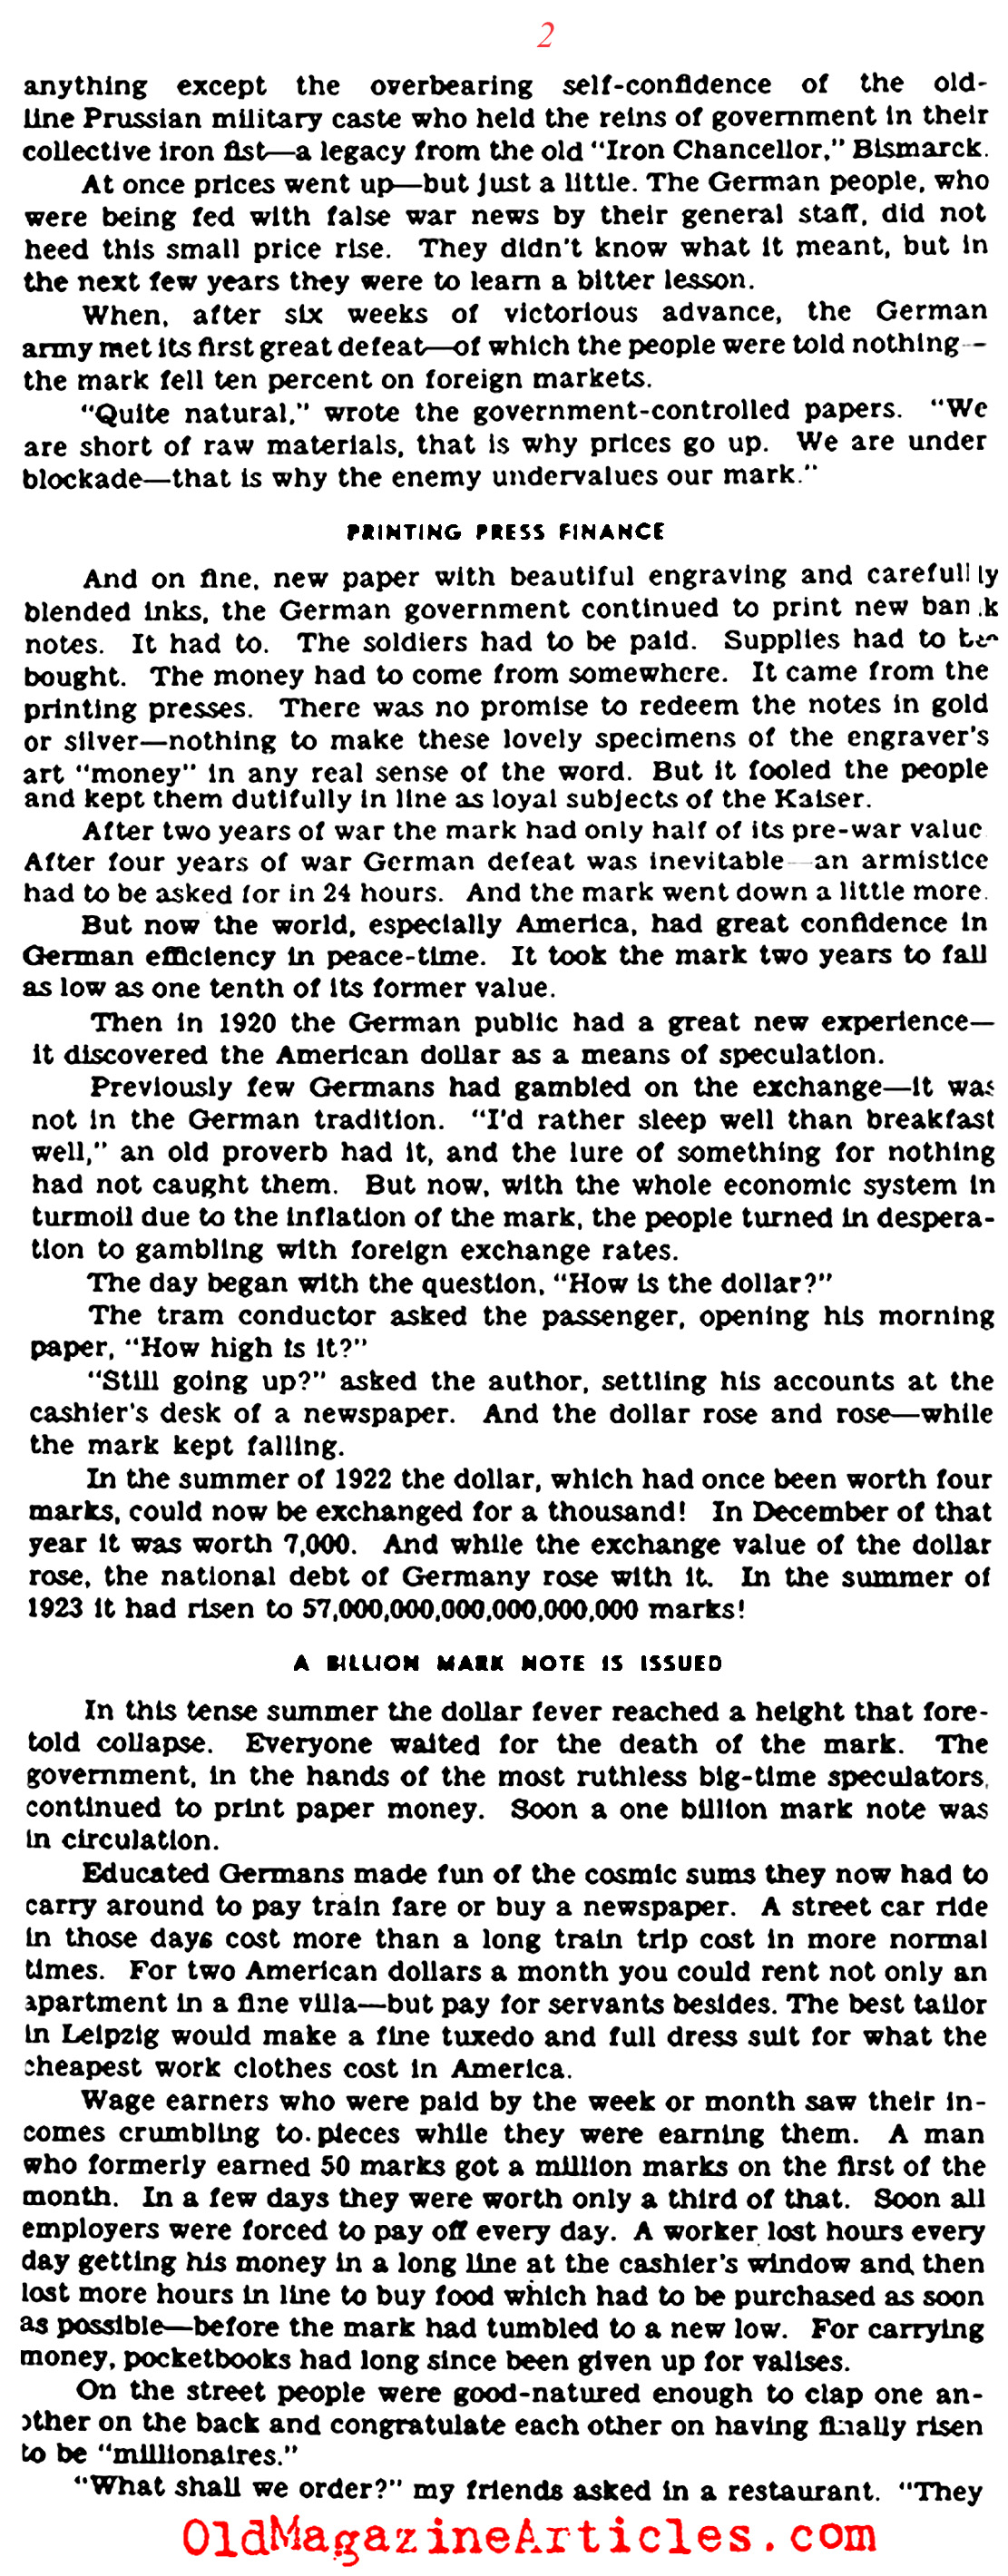 Rampant Inflation in Post-War Germany (Click Magazine, 1944)